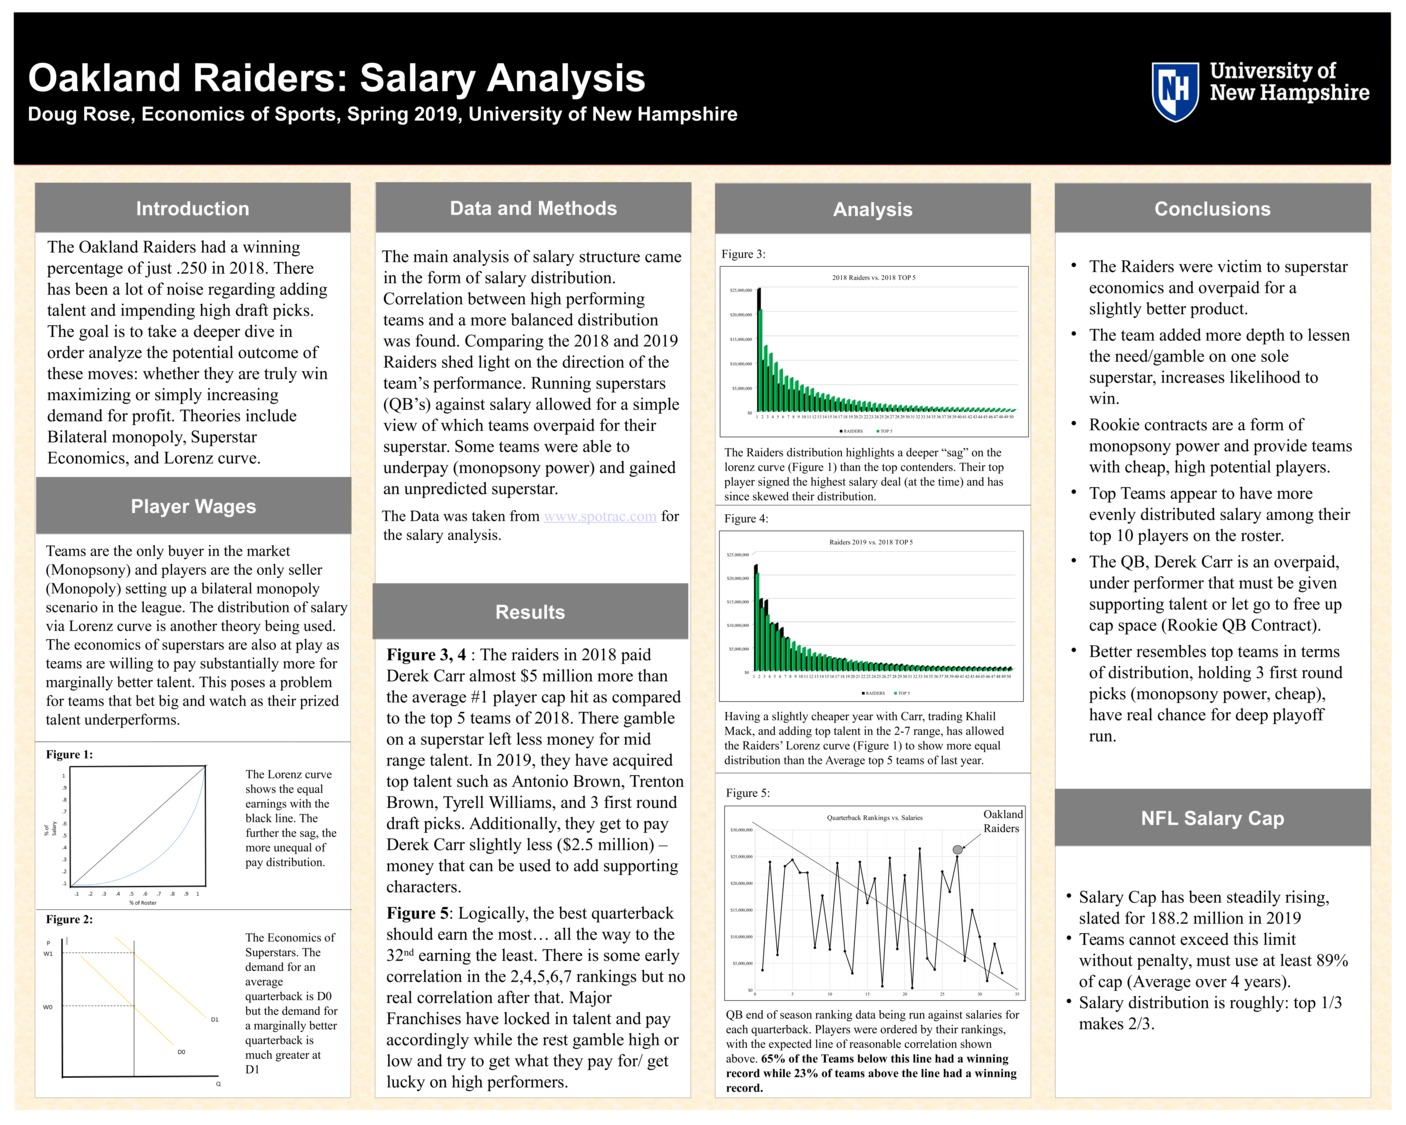 Oakland Raiders: Salary Analysis  by dr1039